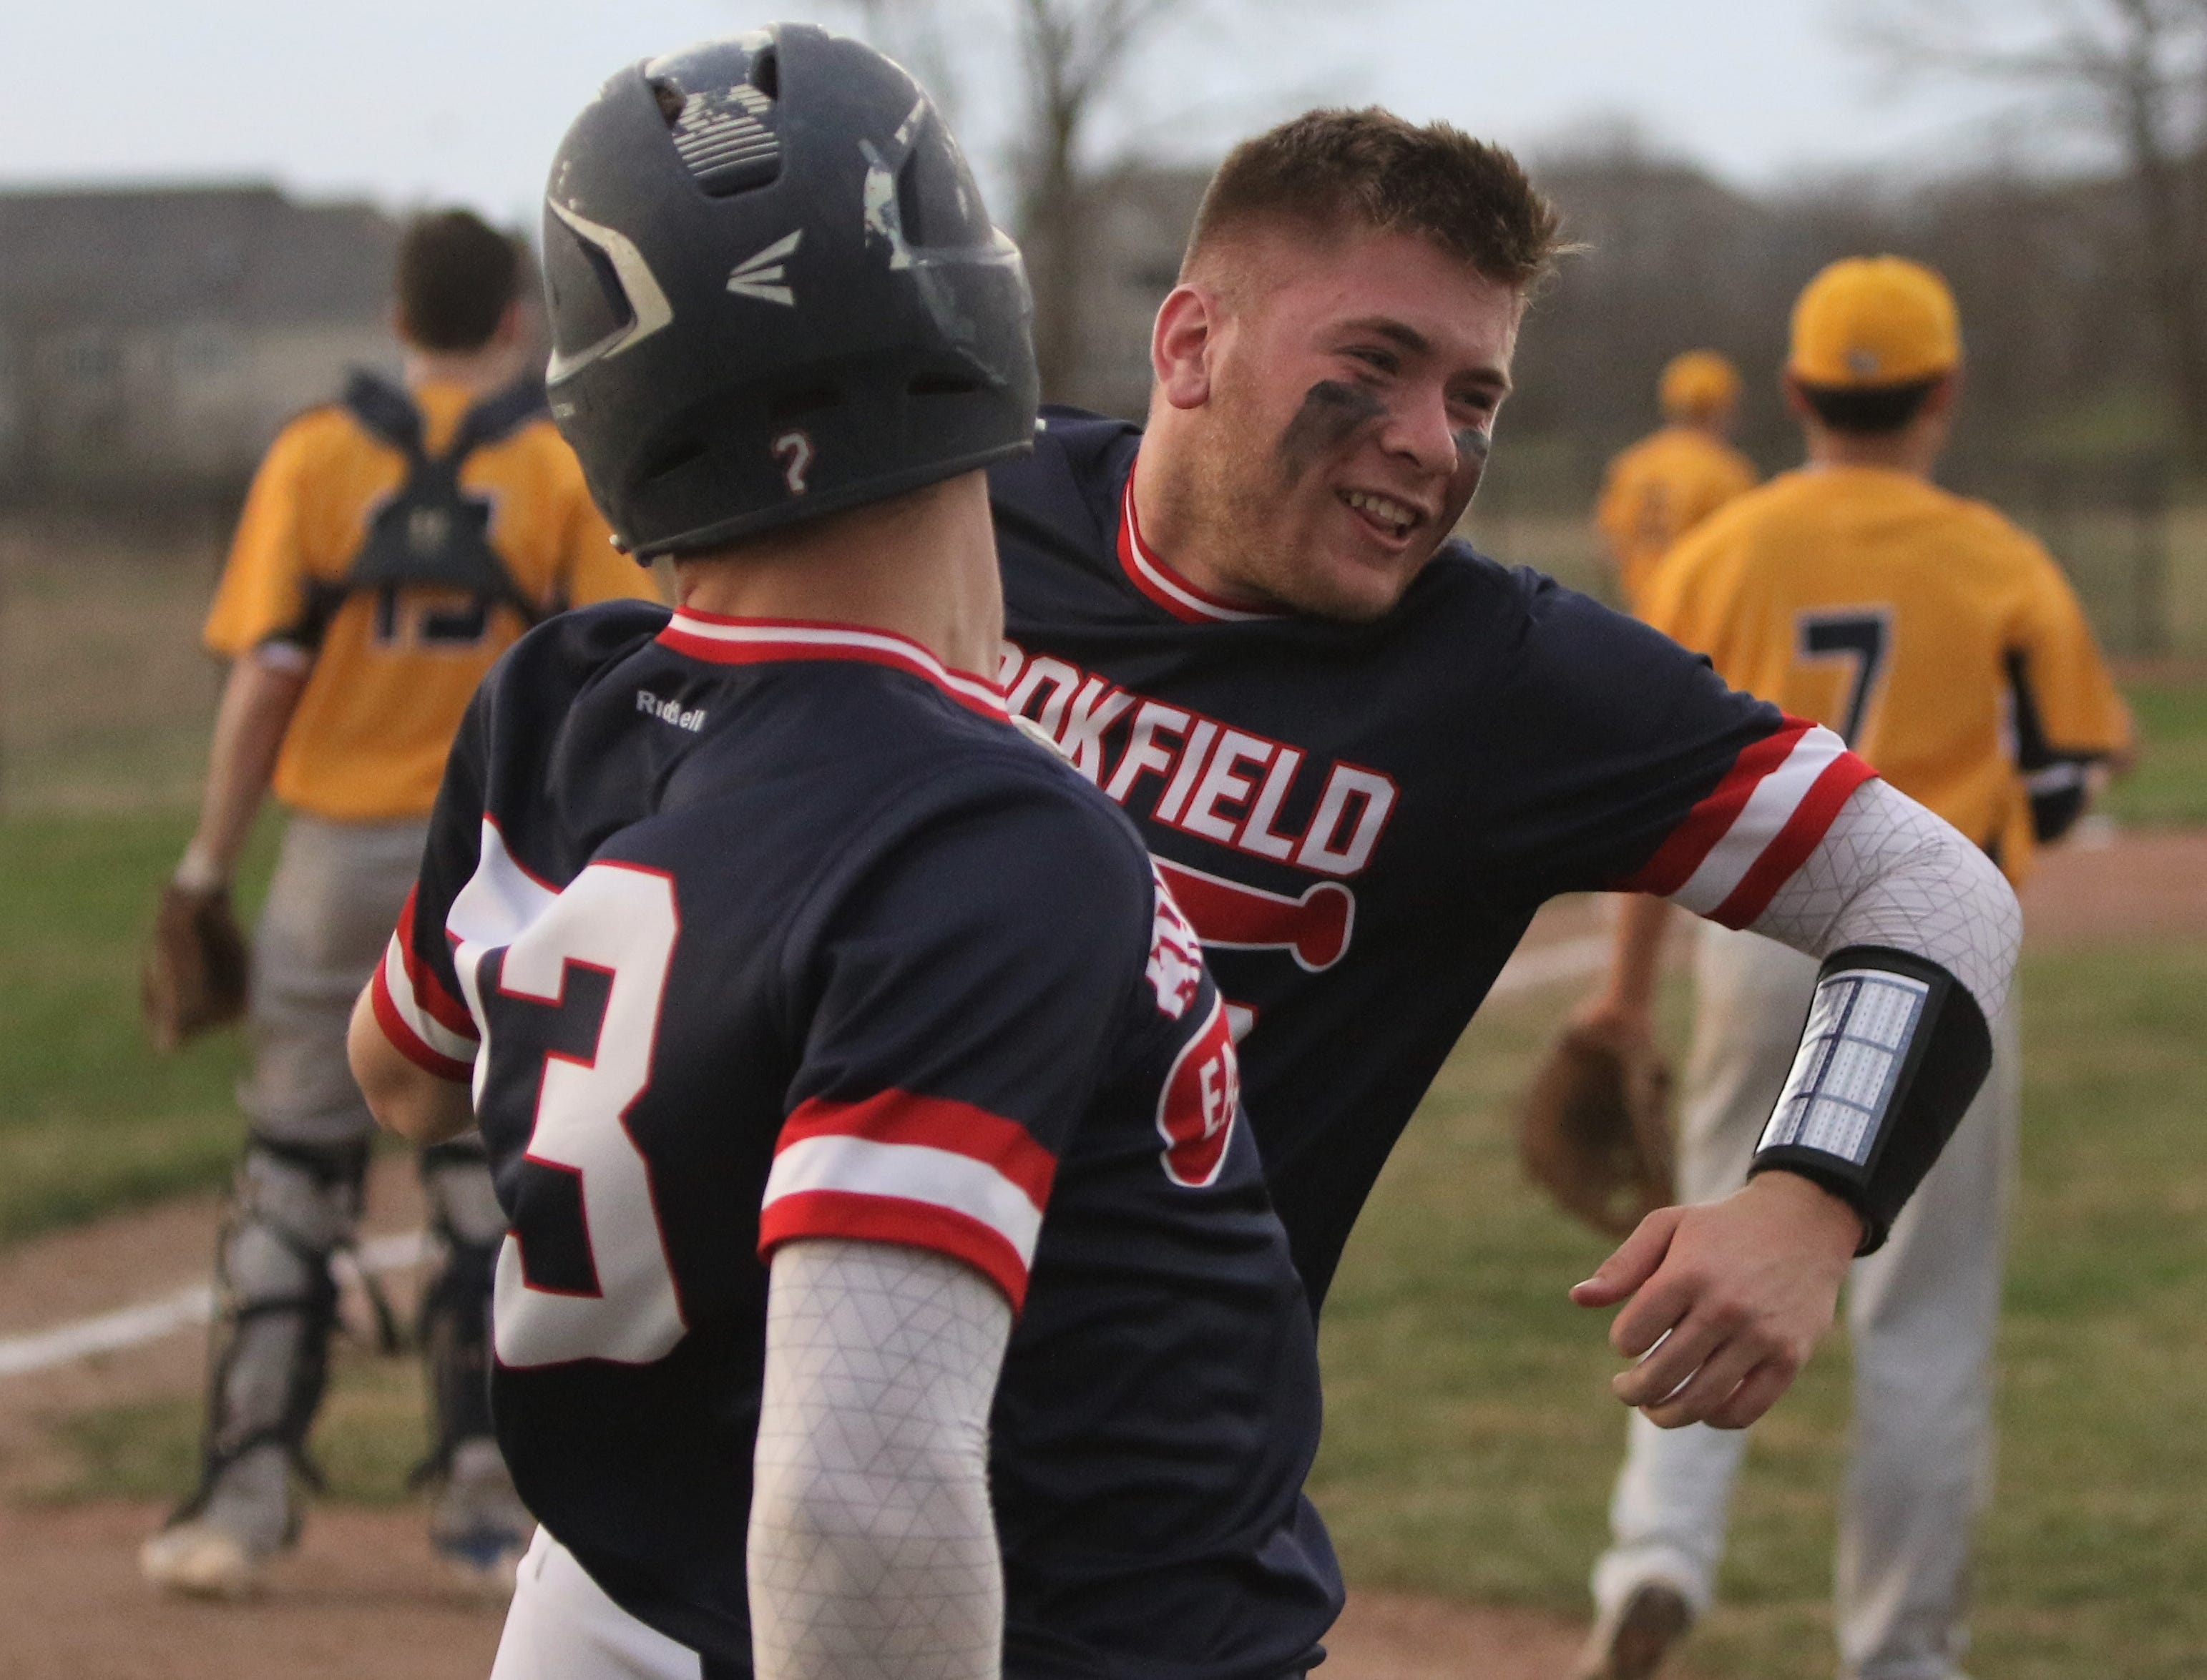 Brookfield East teammates Ryan Mazza (right) and Jack Steger celebrate during their team's six-run sixth inning to take the lead over Brookfield Academy.